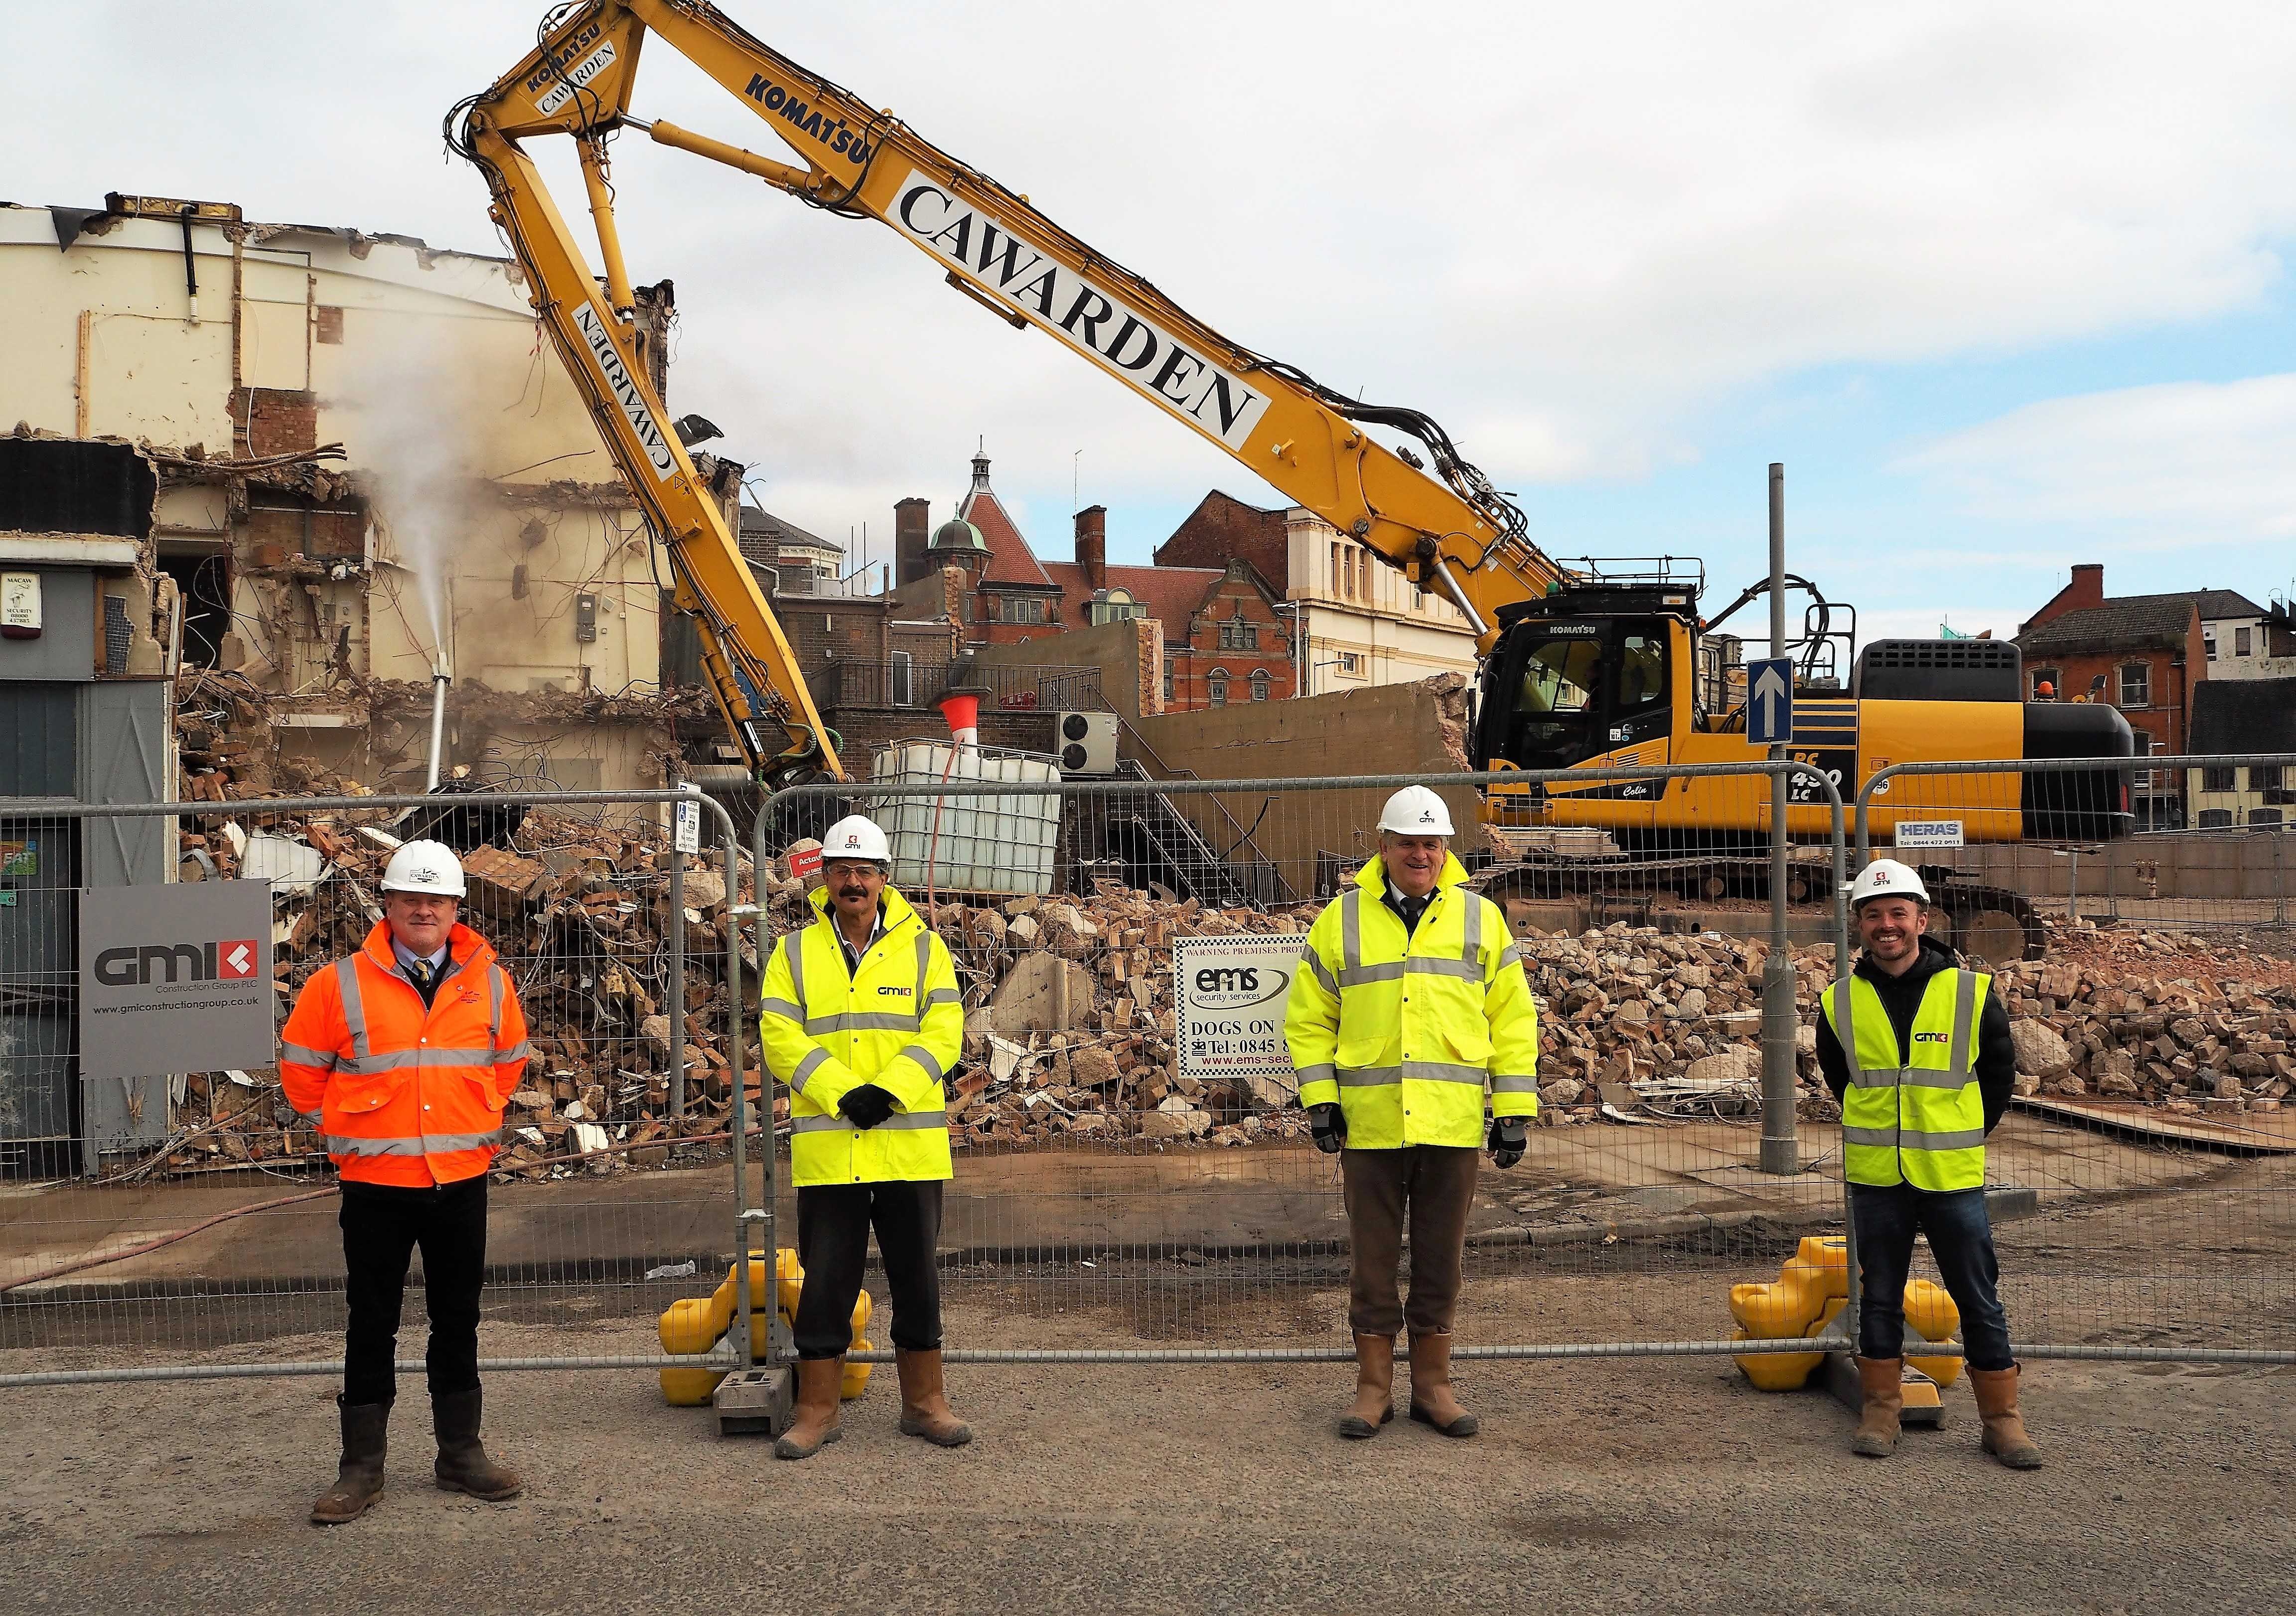 DEMOLITION WORK STARTS AHEAD OF PHASE ONE OF THE £200 MILLION BECKETWELL PROJECT